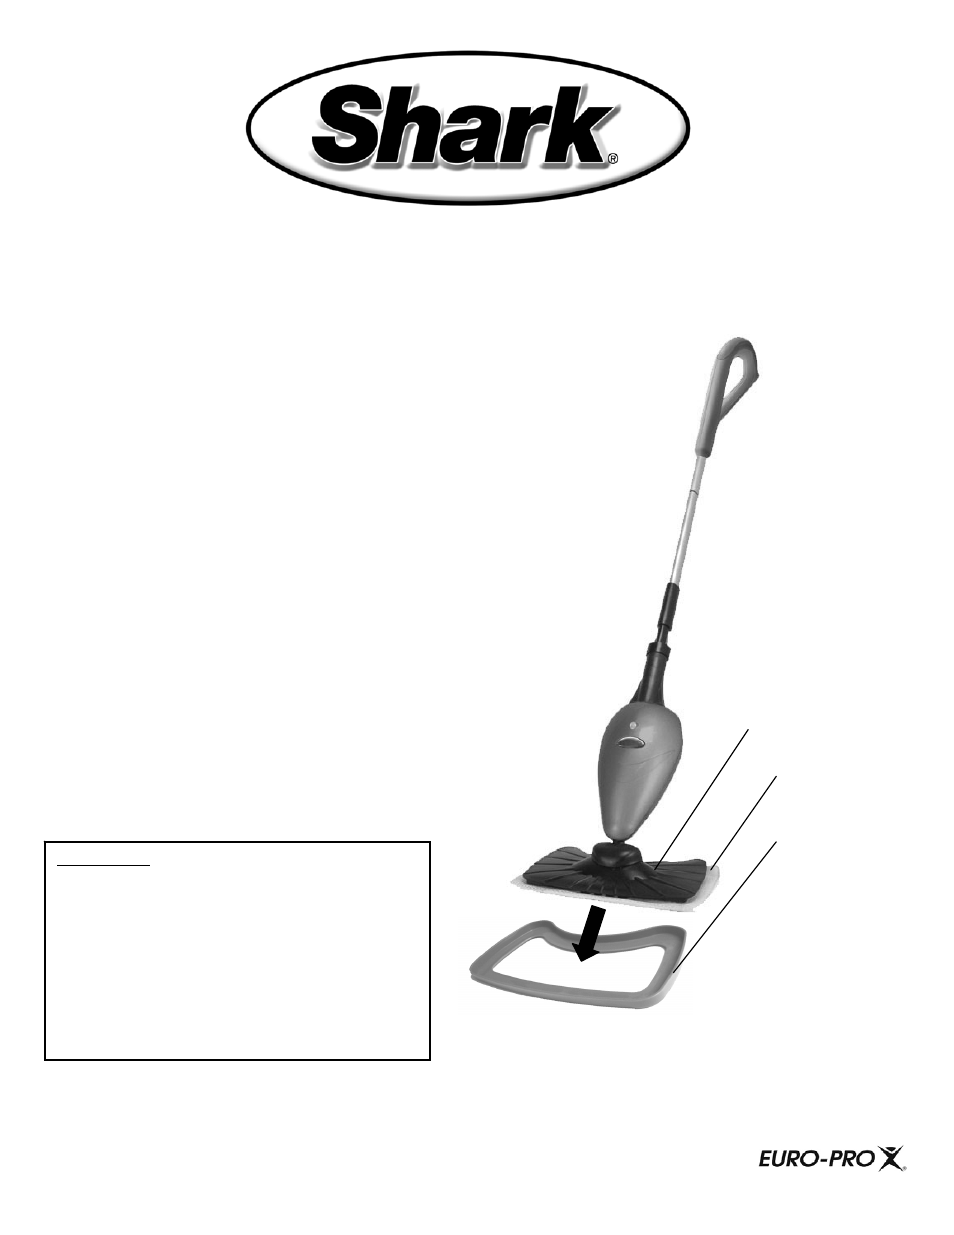 Shark Carpet Glider S3101 User Manual 1 Page